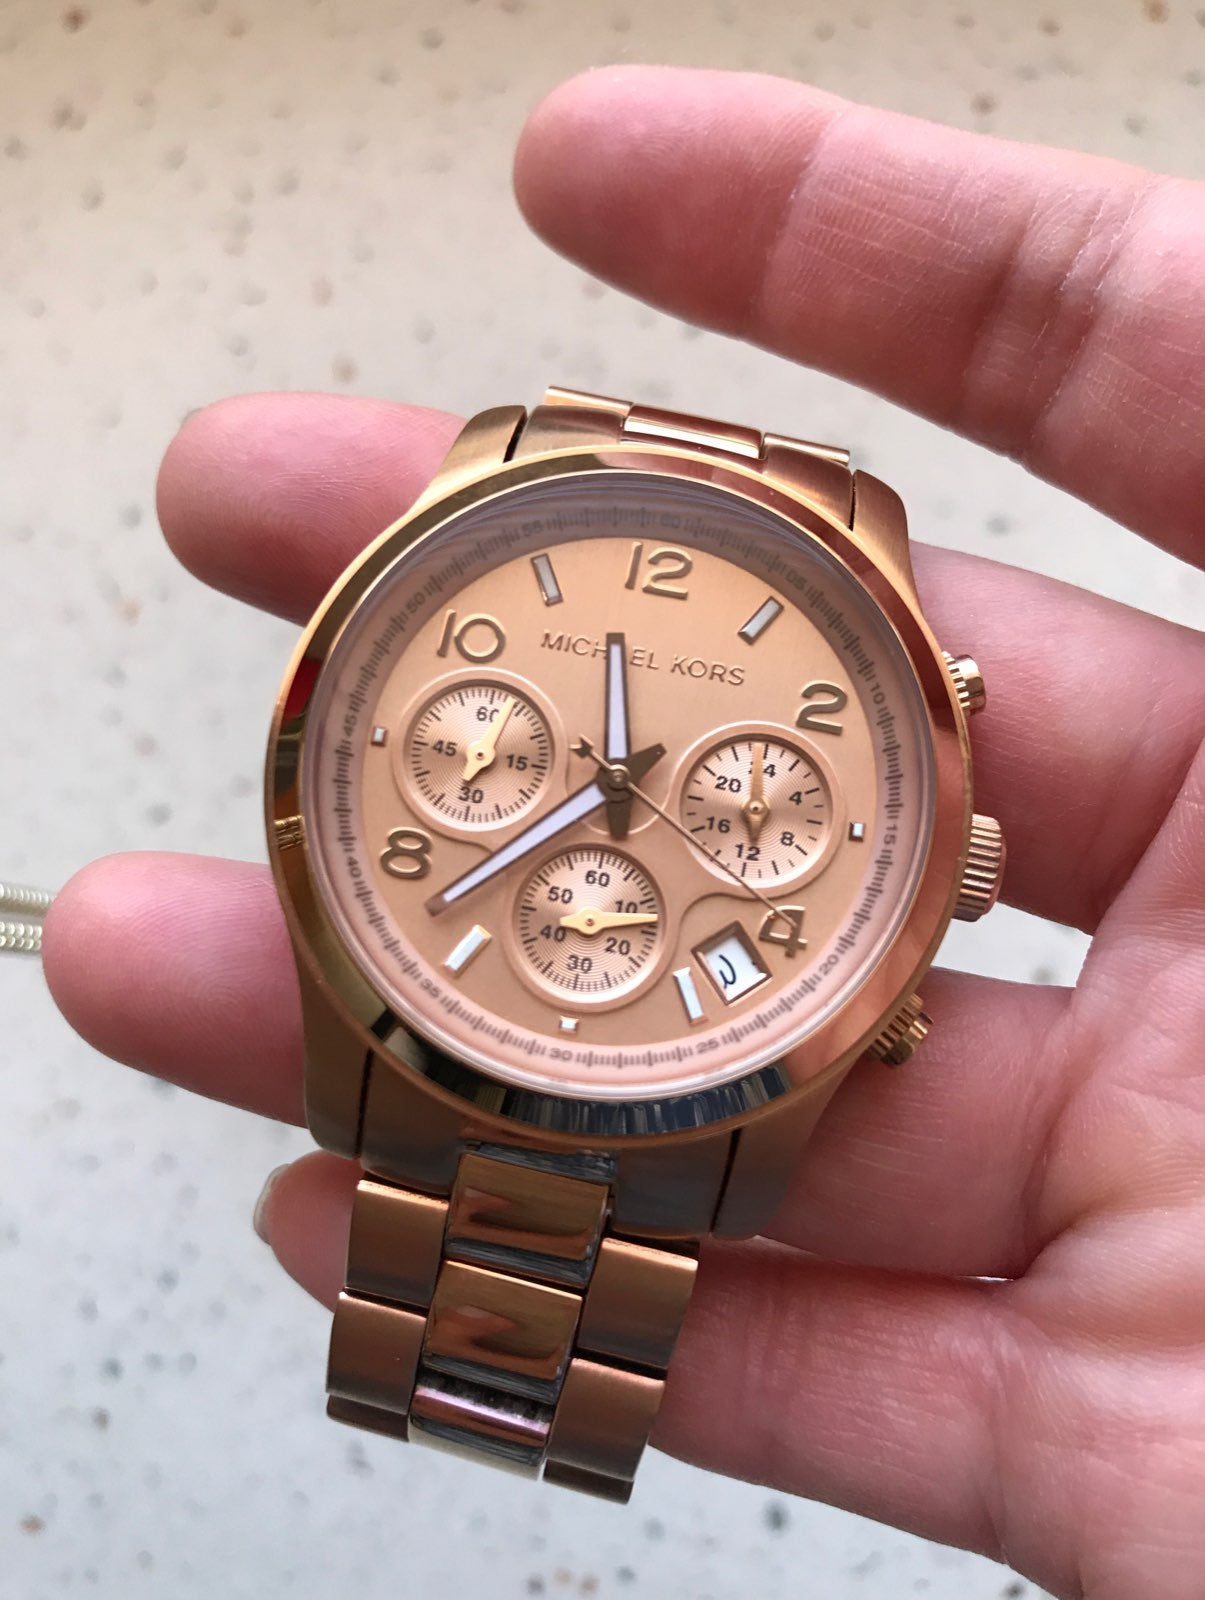 Michael Kors Watch with oroginal box and